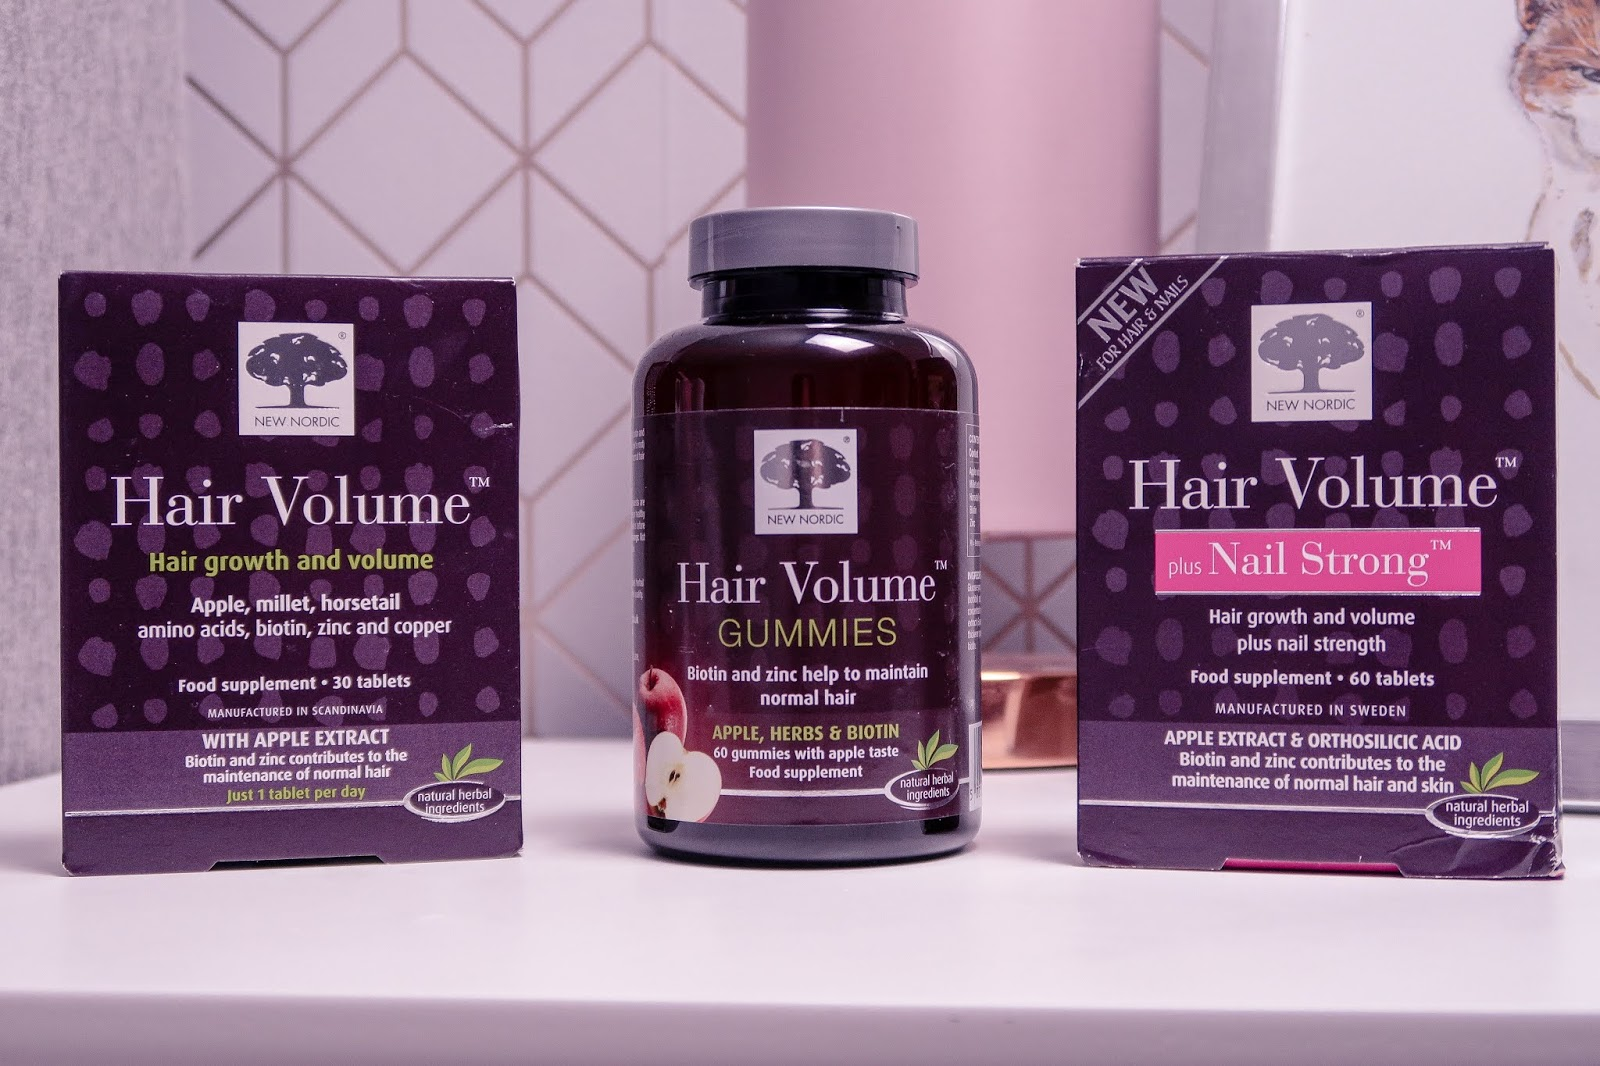 Close up photo of two New Nordic Hair Volume Supplements plus Hair Volume gummies bottle places on a white bed side table with a baby pink lamp in the background out of focus. Bottle plus boxes are Purple with white writing.